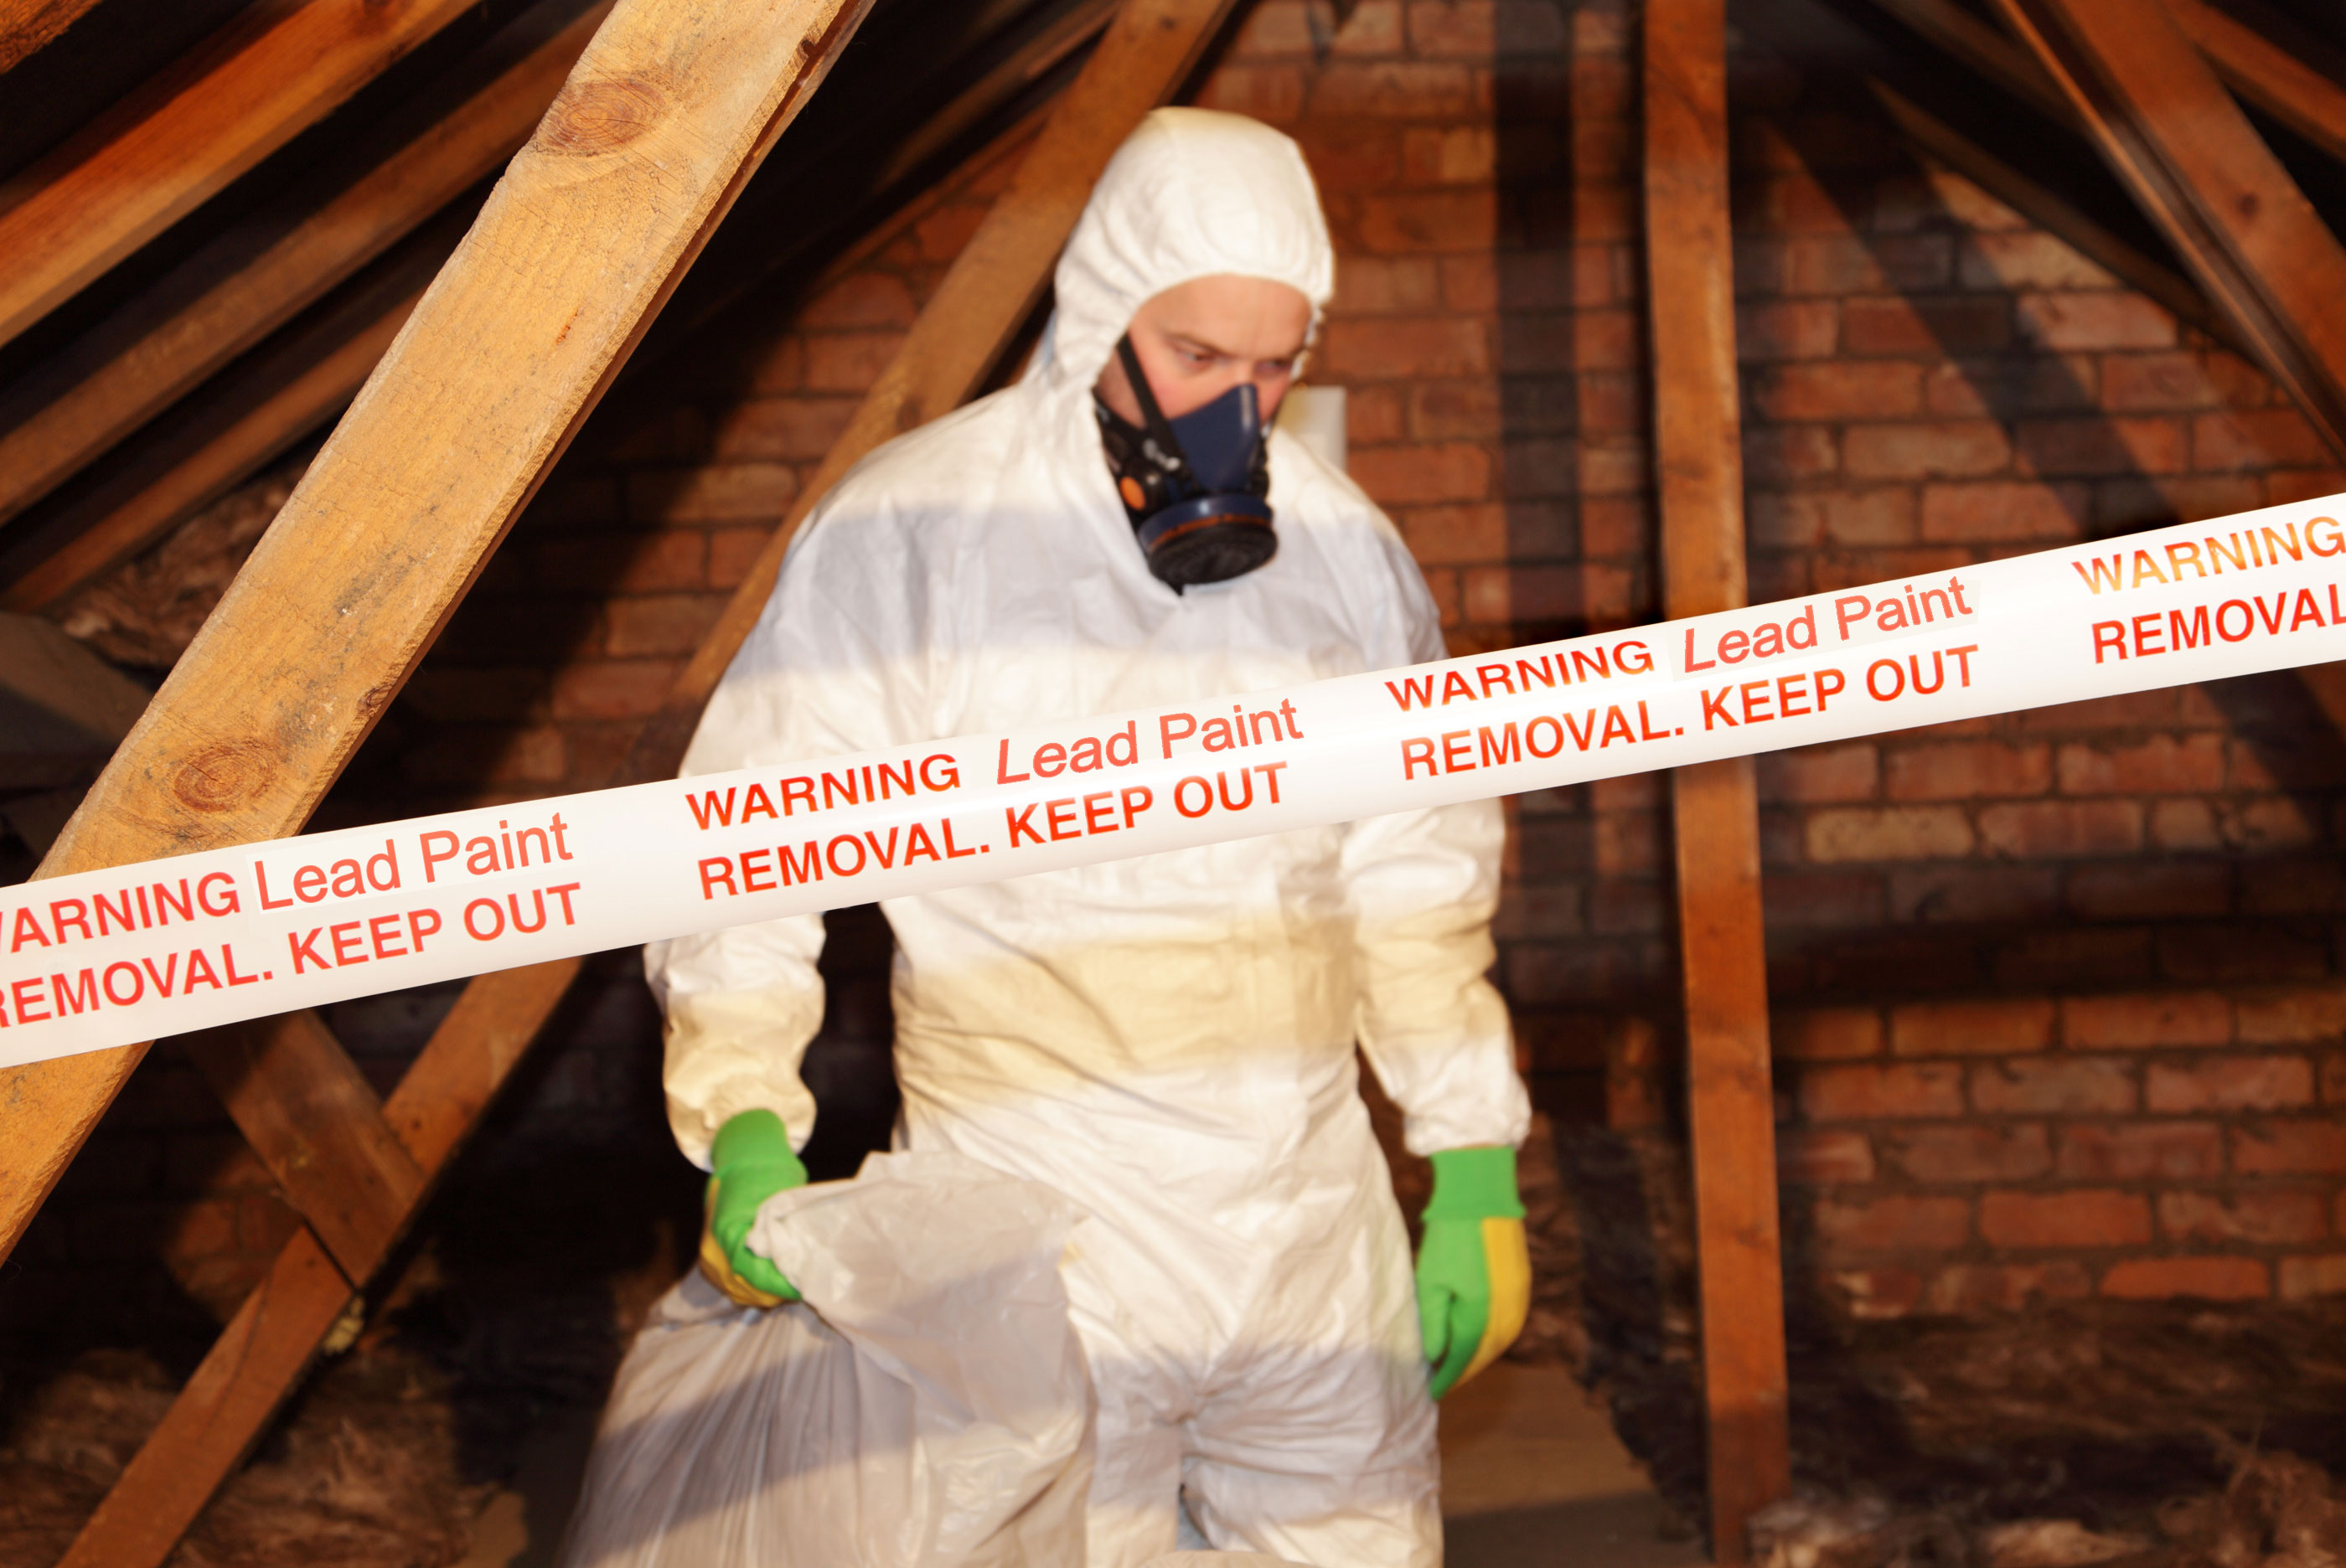 Man in white protective suite and mask in attic moving lead paint